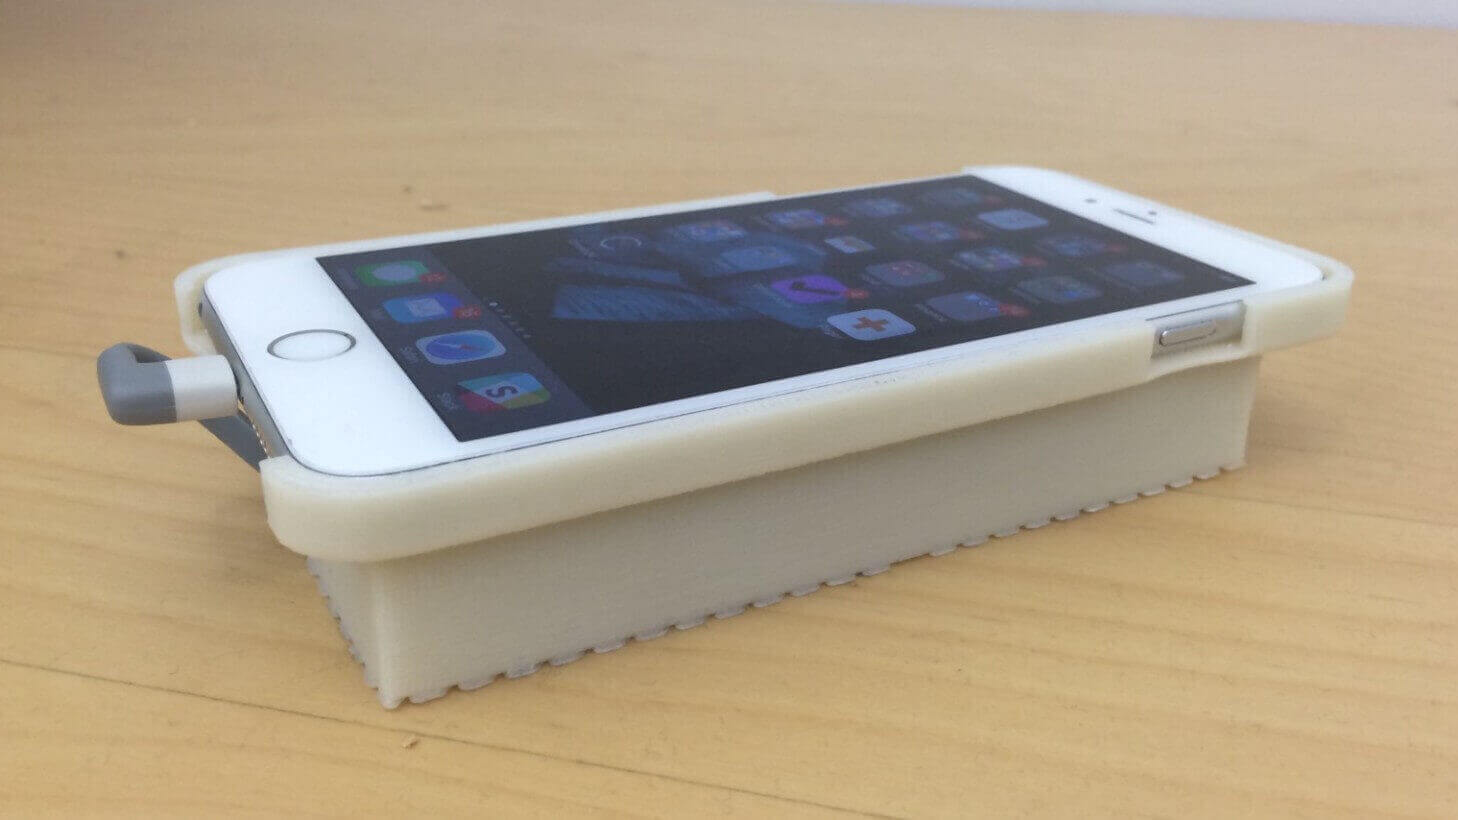 3D Printed Case to Run Android on the iPhone | All3DP